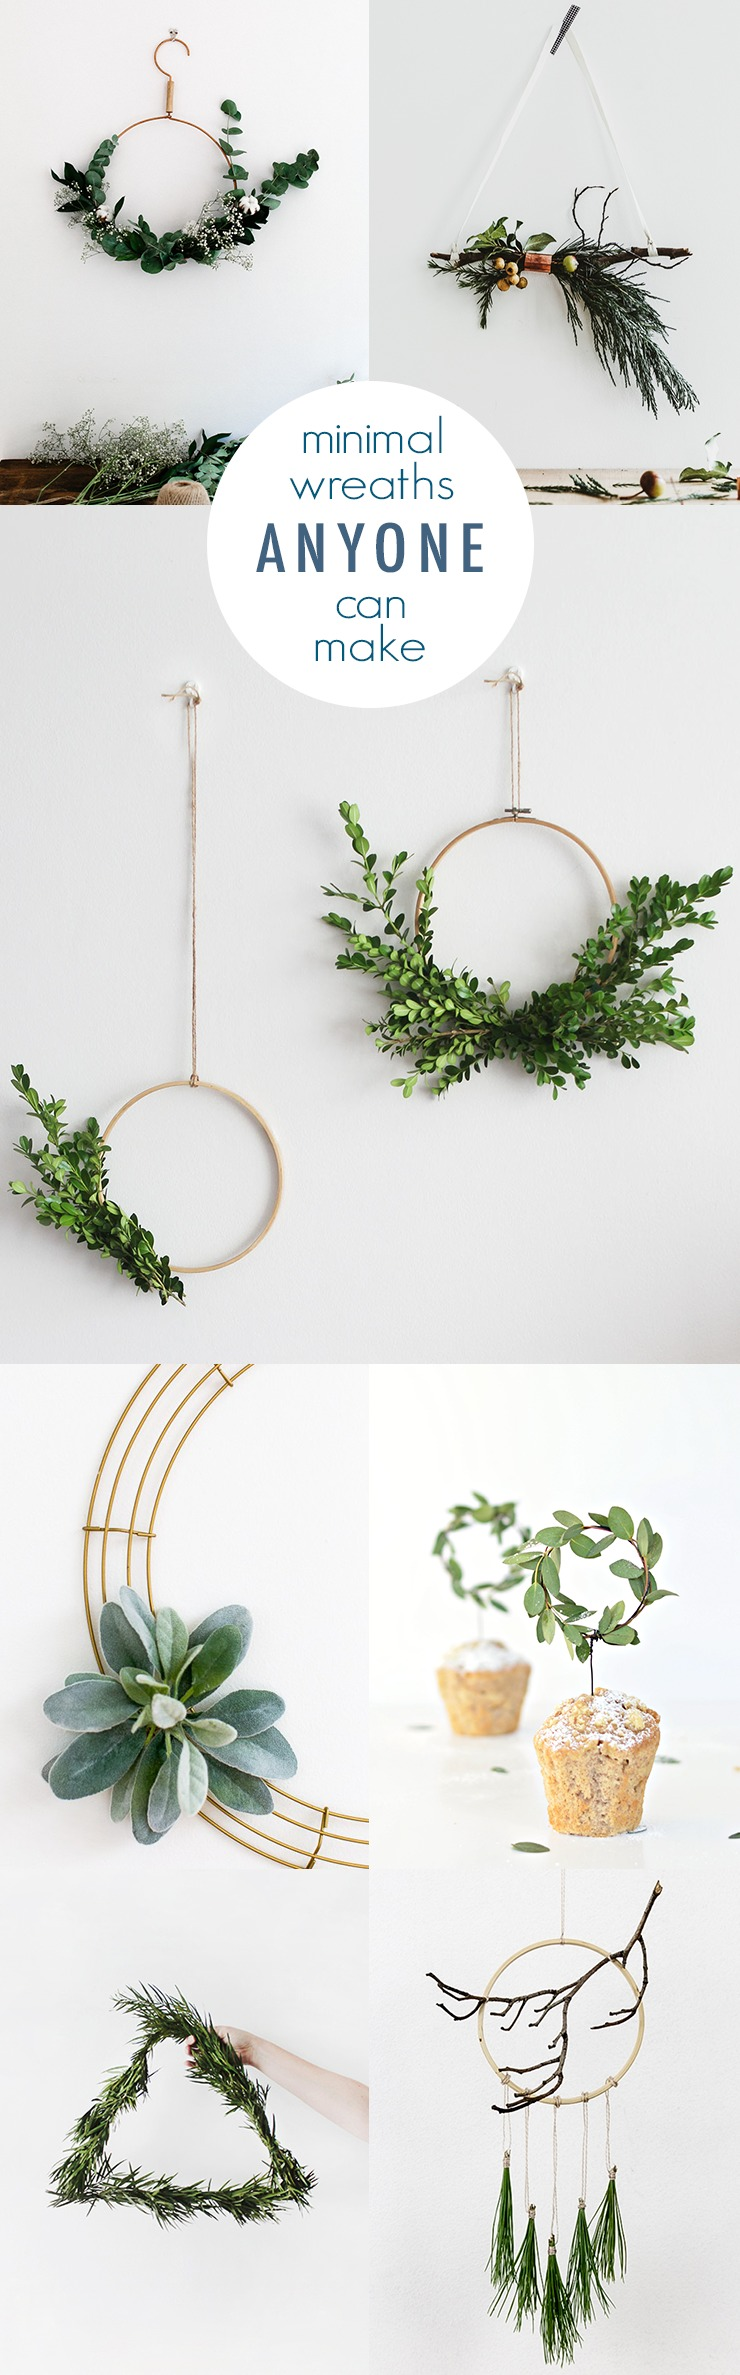 DIY minimalist Christmas wreaths with evergreens and berries (via idlehandsawake.com)